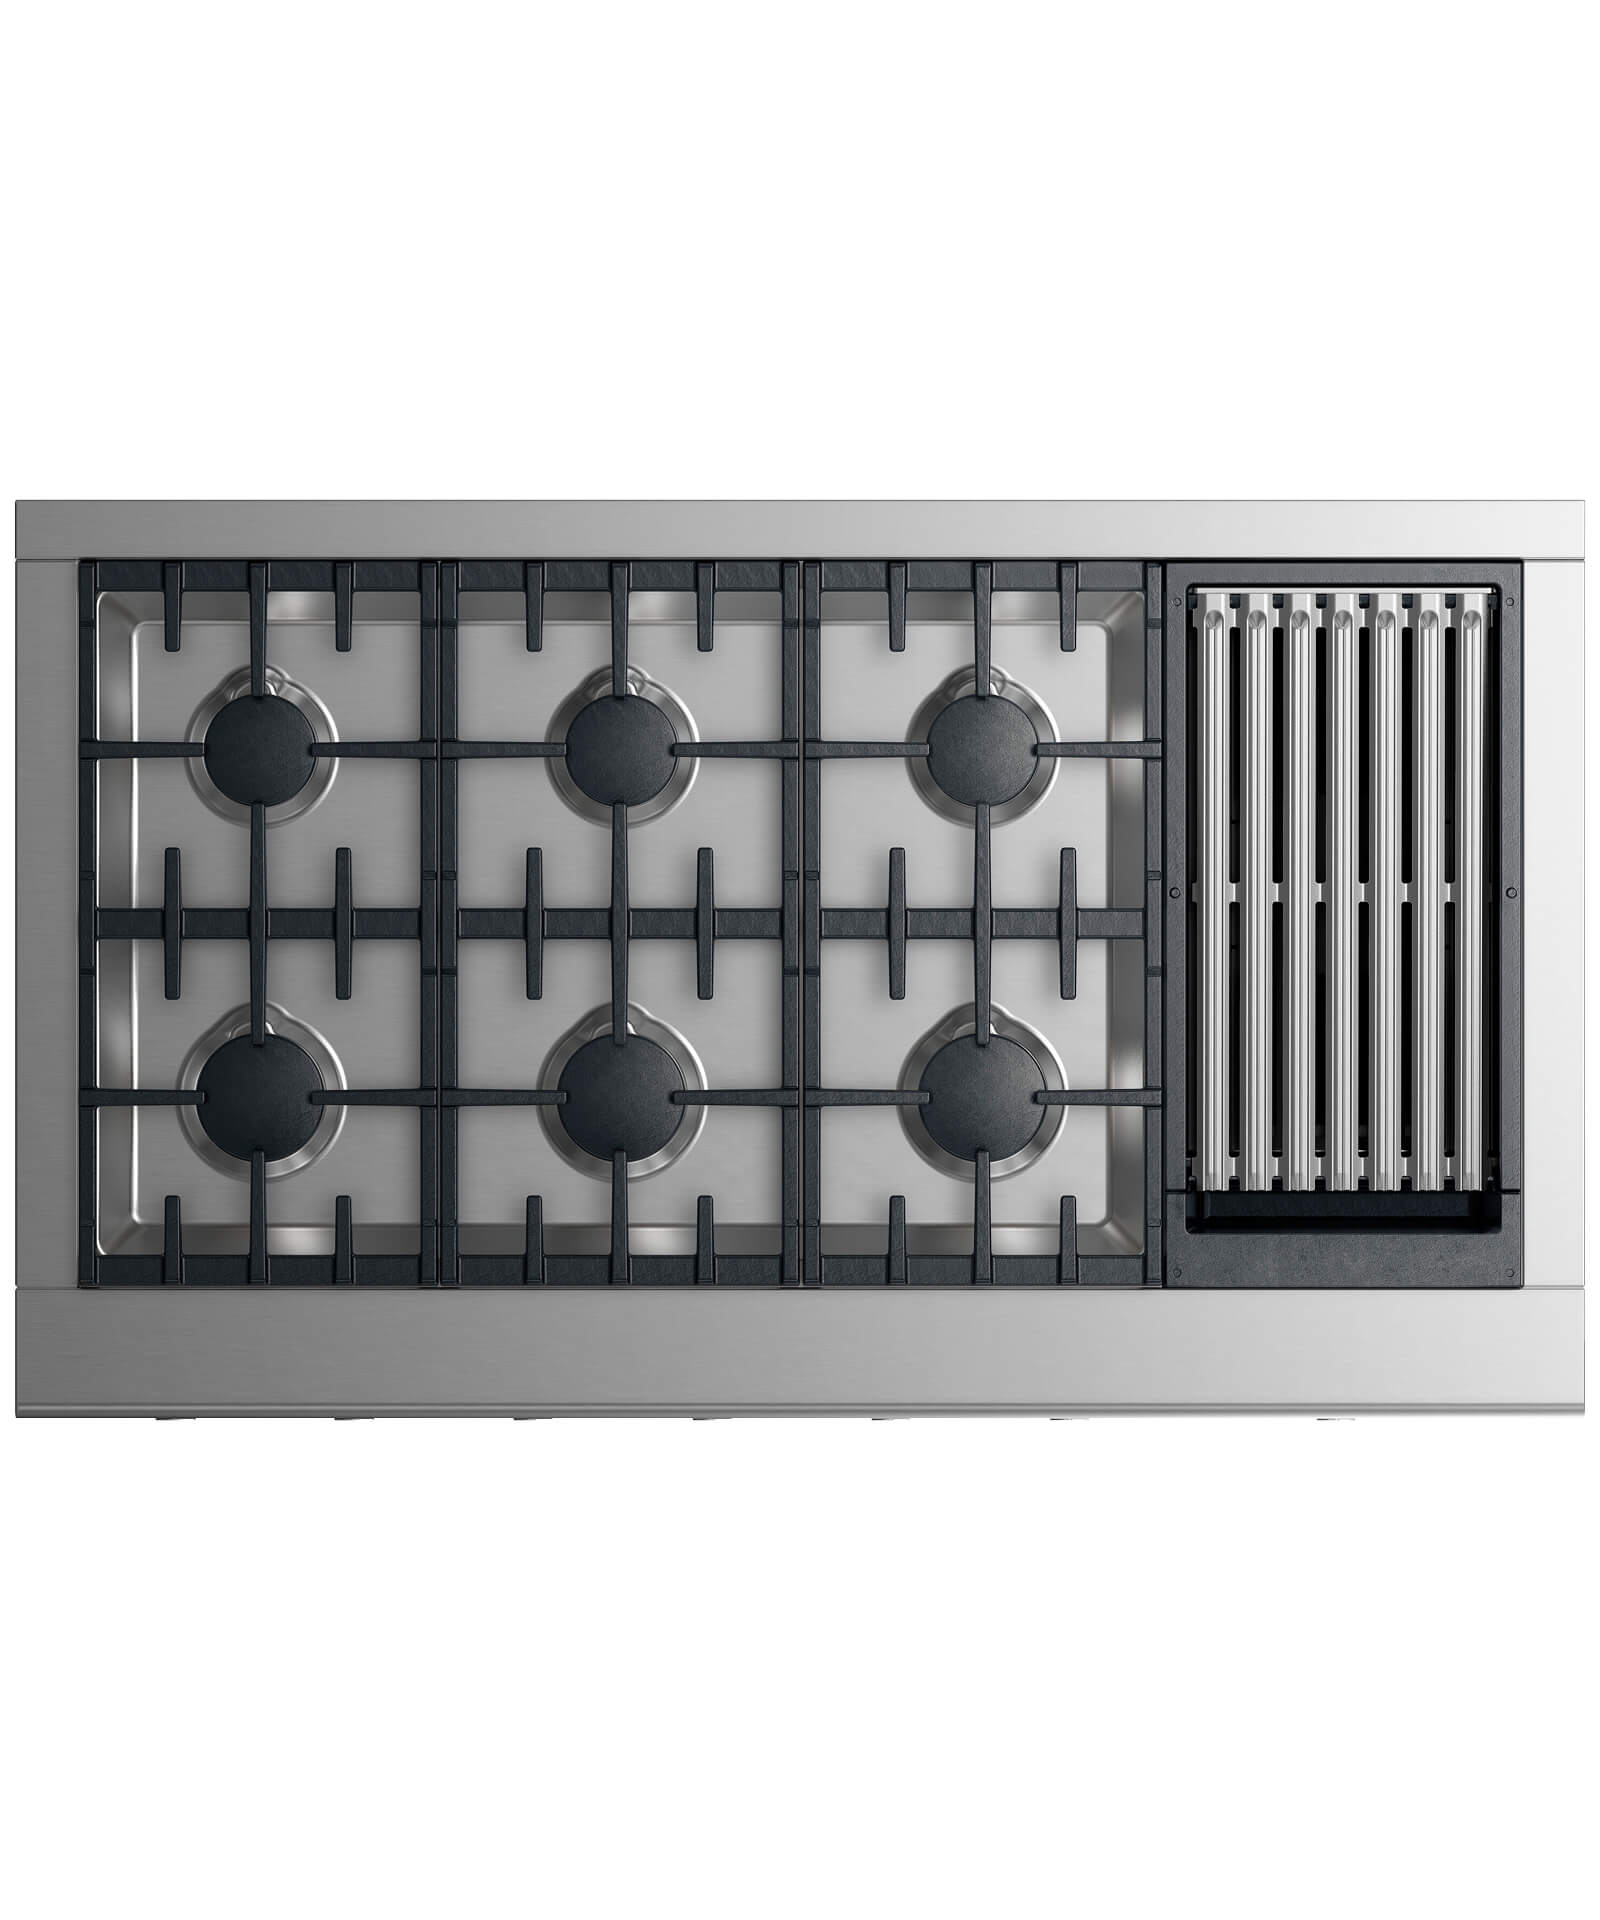 "CPV2-486GL-N_N - 48"" Professional Cooktop: 6 burners with grill - 71382"